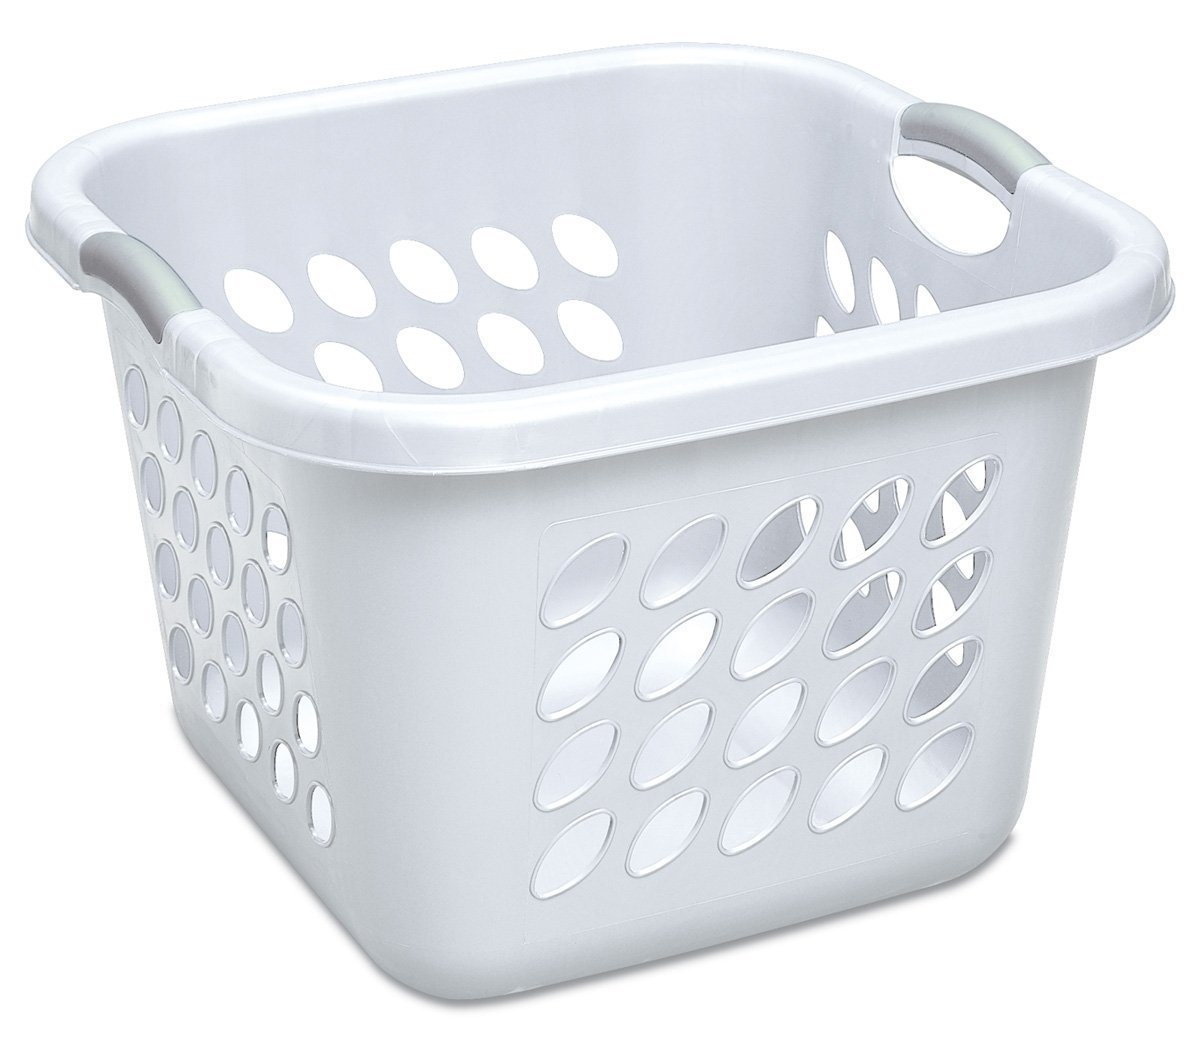 Empty Laundry Basket Clipart Square Laundry Basket is a